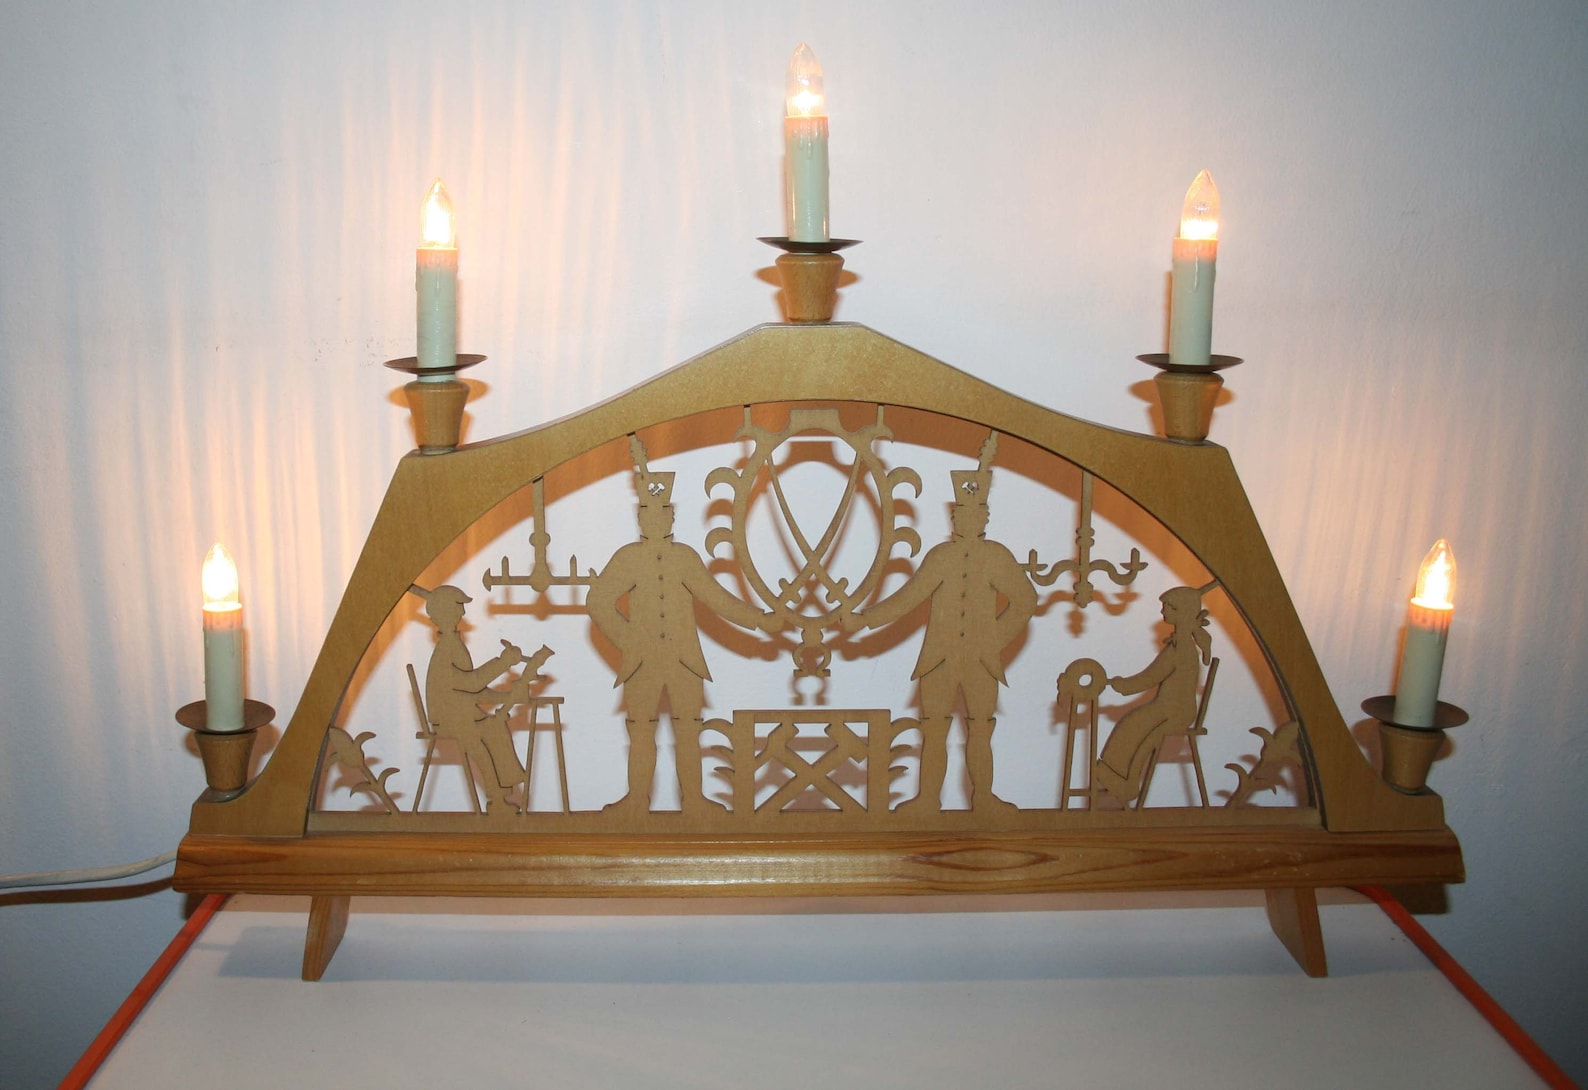 Schwibbogen Erzgebirge, large electric vintage bow, 5 candles, wood fret work, original ore, marketed on the ground